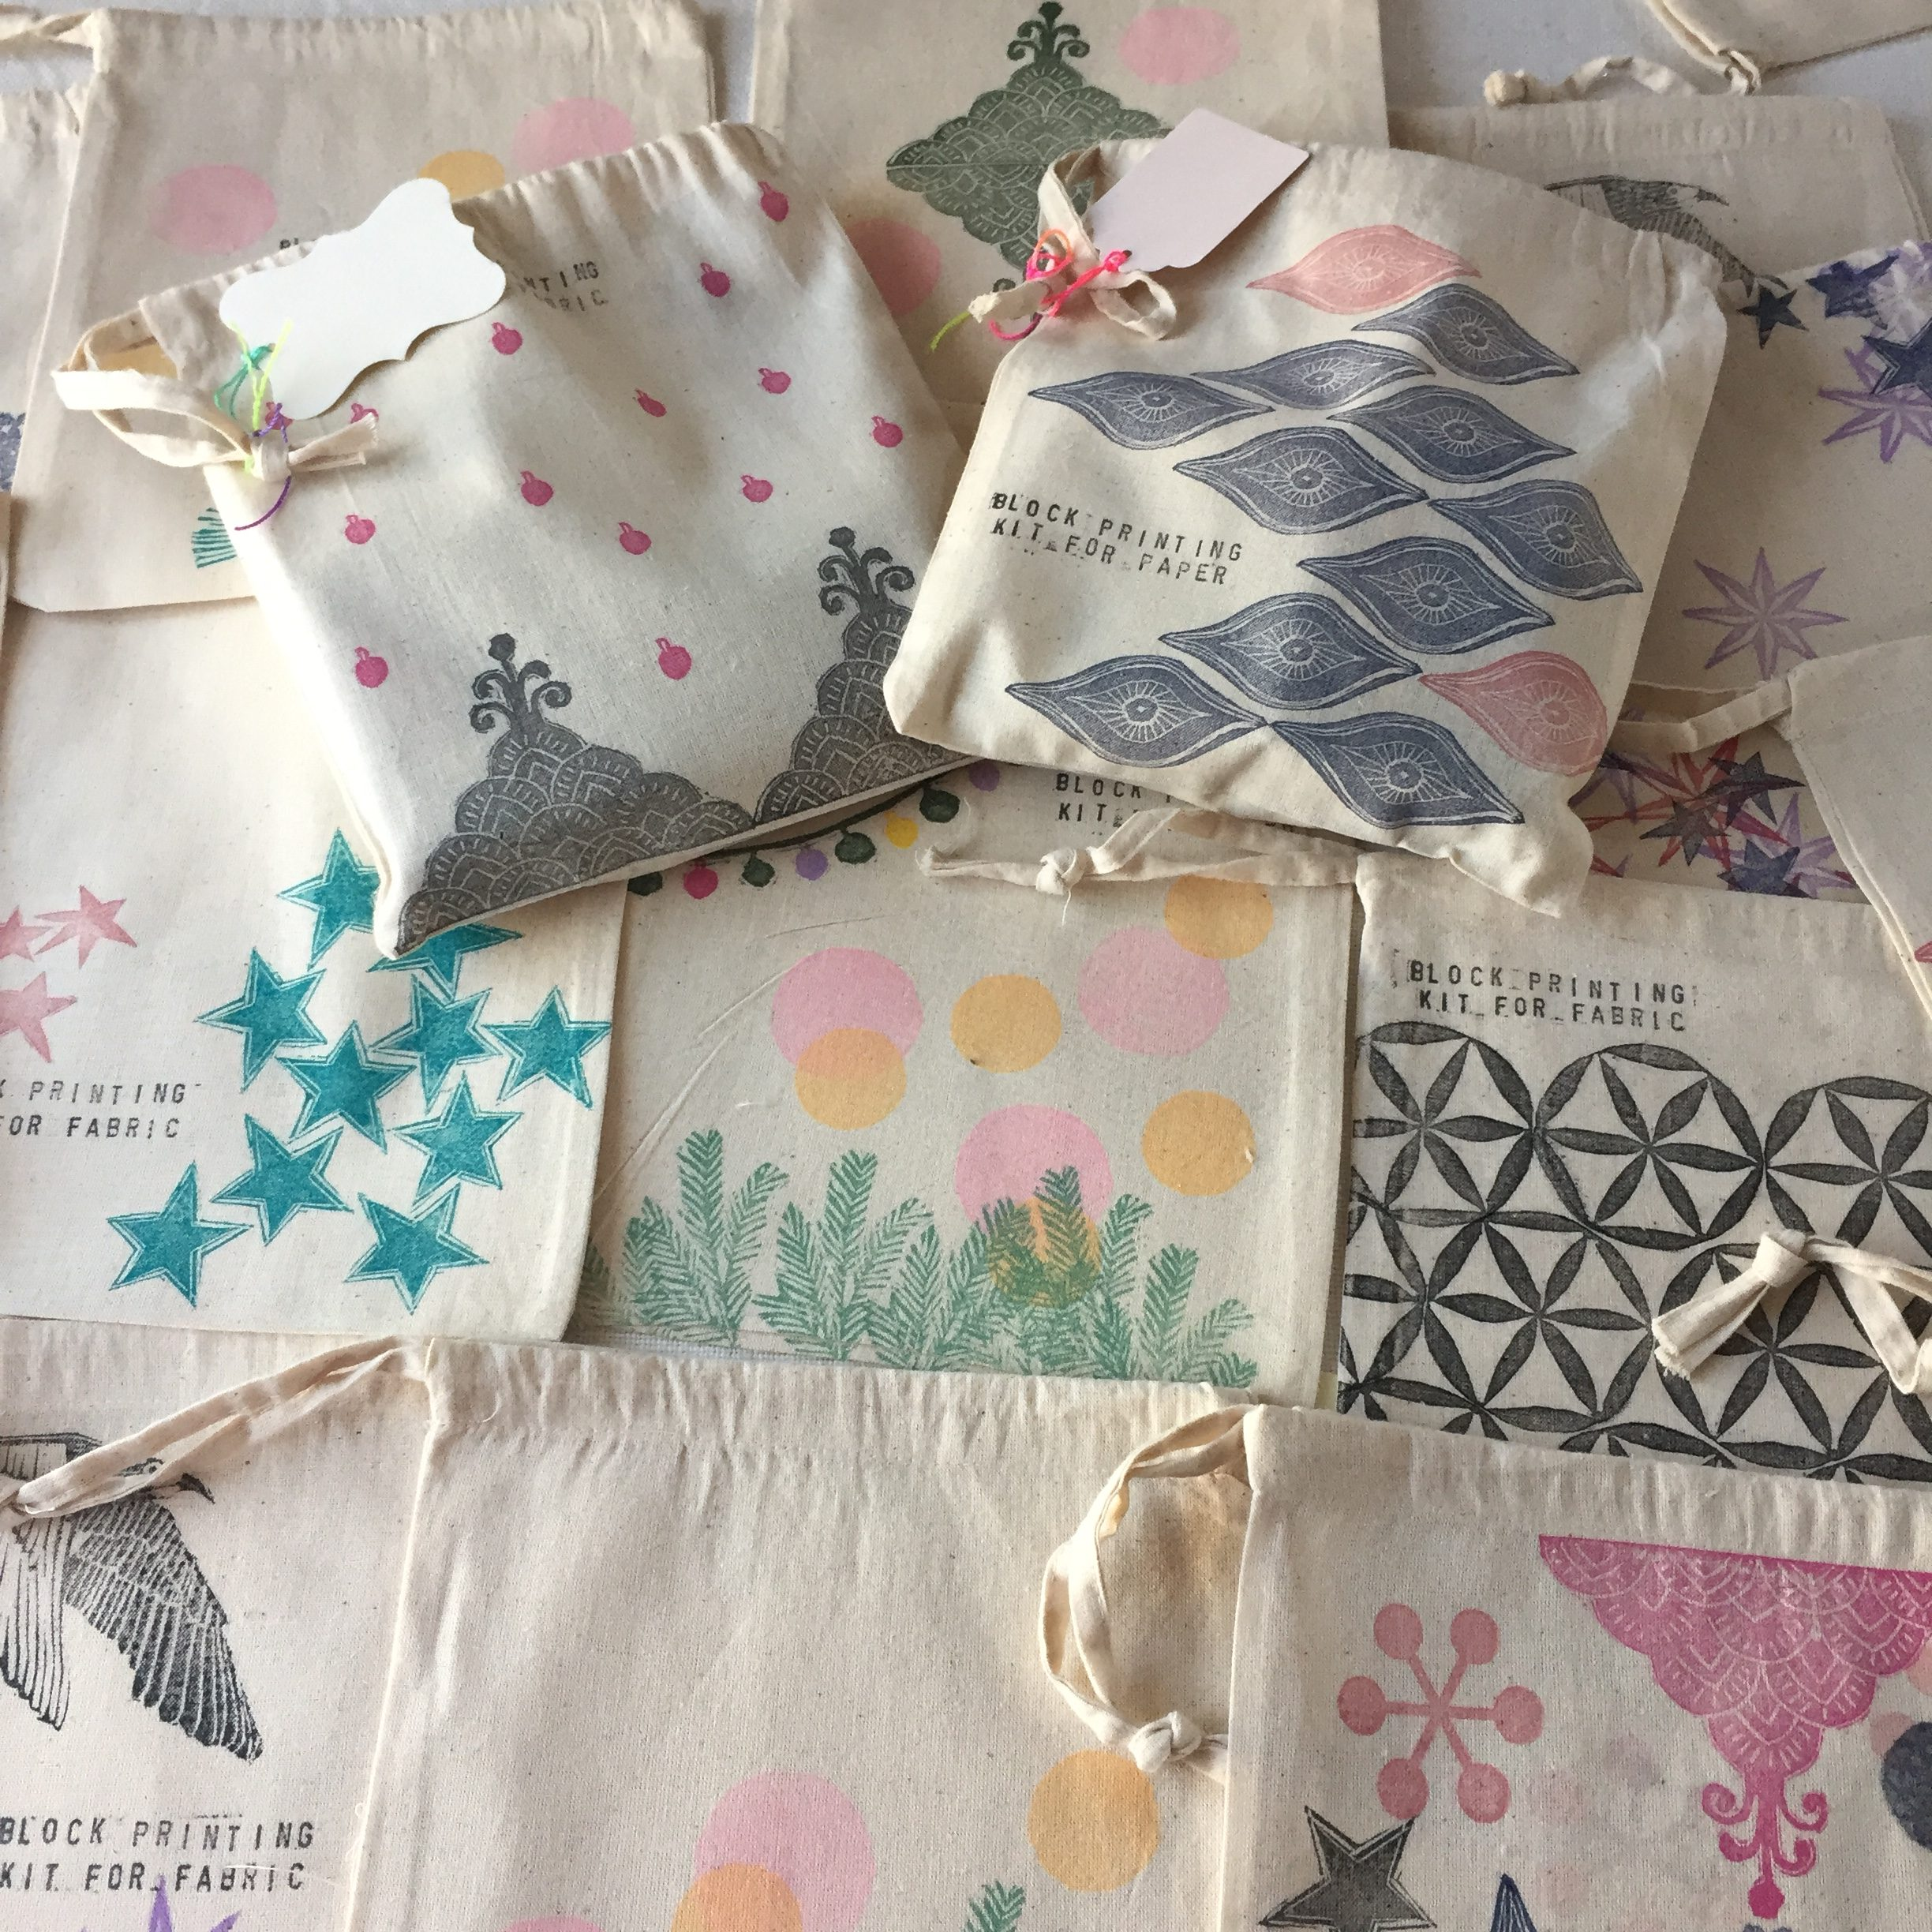 Block Printing On Fabric Kits Out Of Stock Out Of Bounds